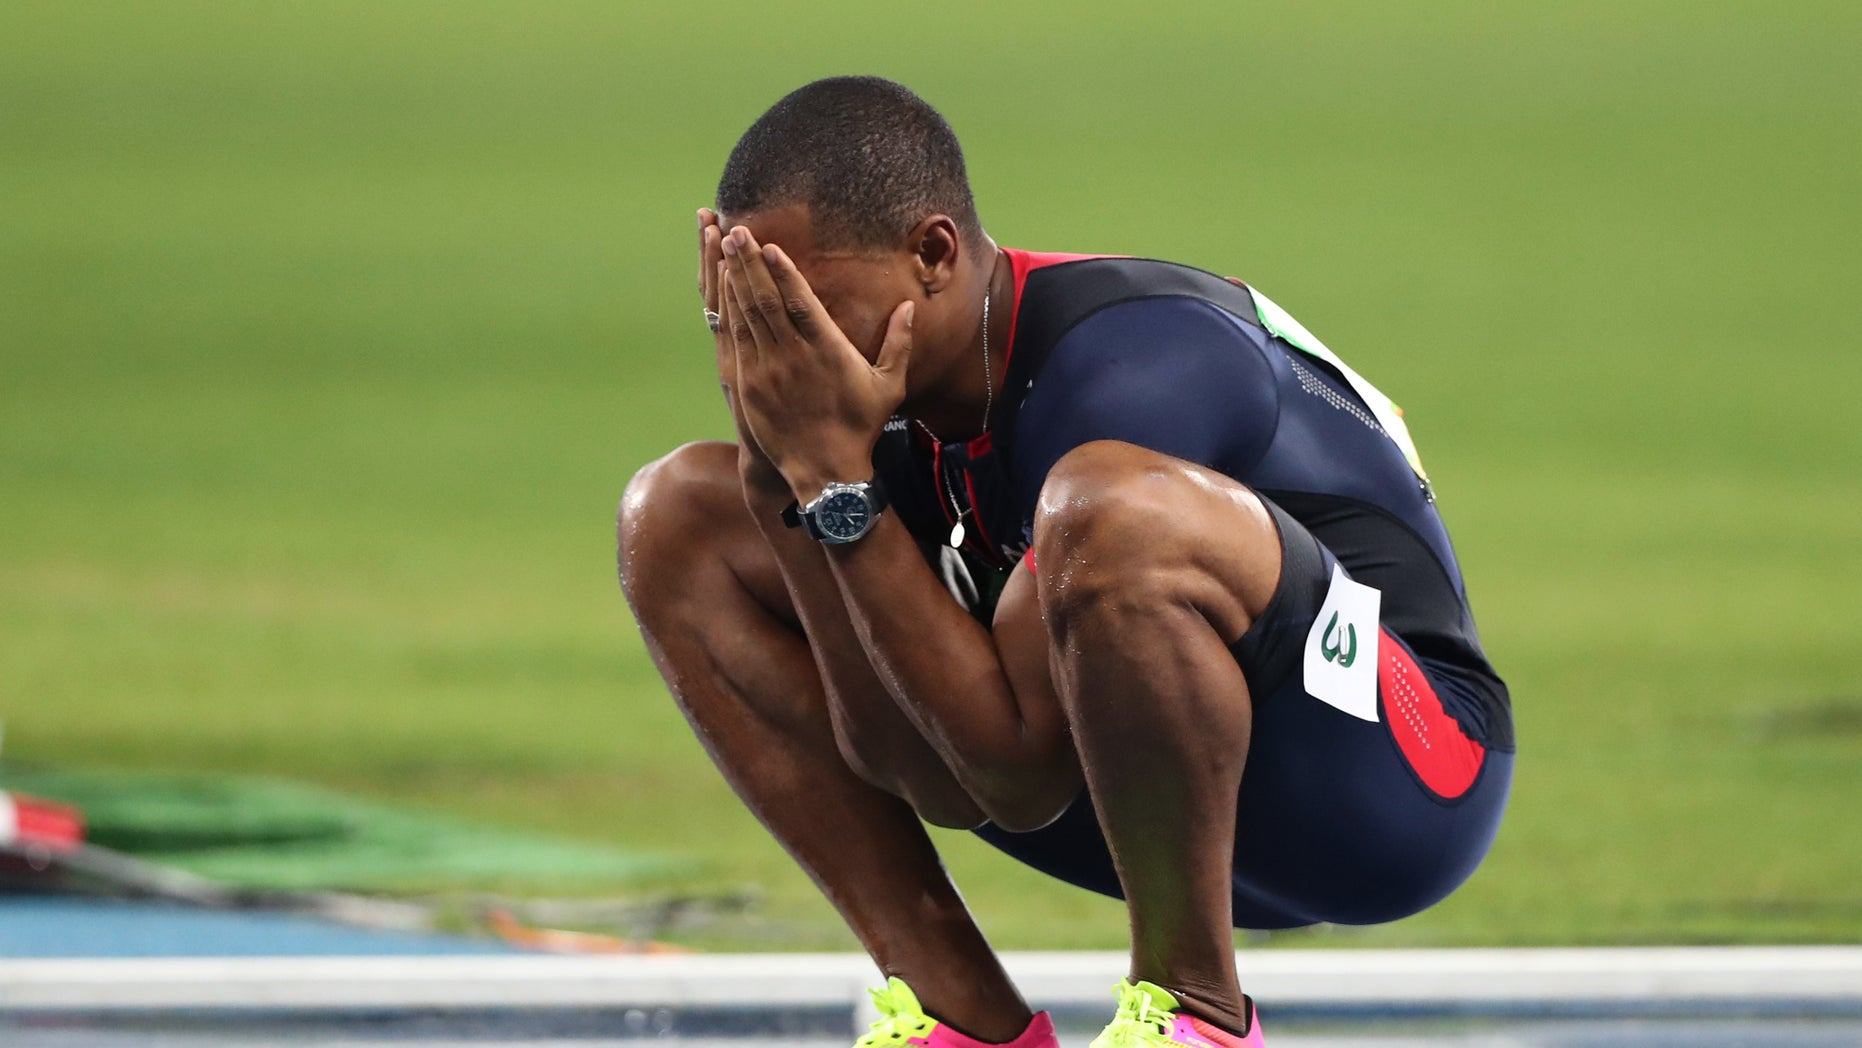 France's Wilhem Belocian reacts after being disqualified for a false start during the athletics competitions of the 2016 Summer Olympics at the Olympic stadium in Rio de Janeiro, Brazil, Monday, Aug. 15, 2016. (AP Photo/Lee Jin-man)